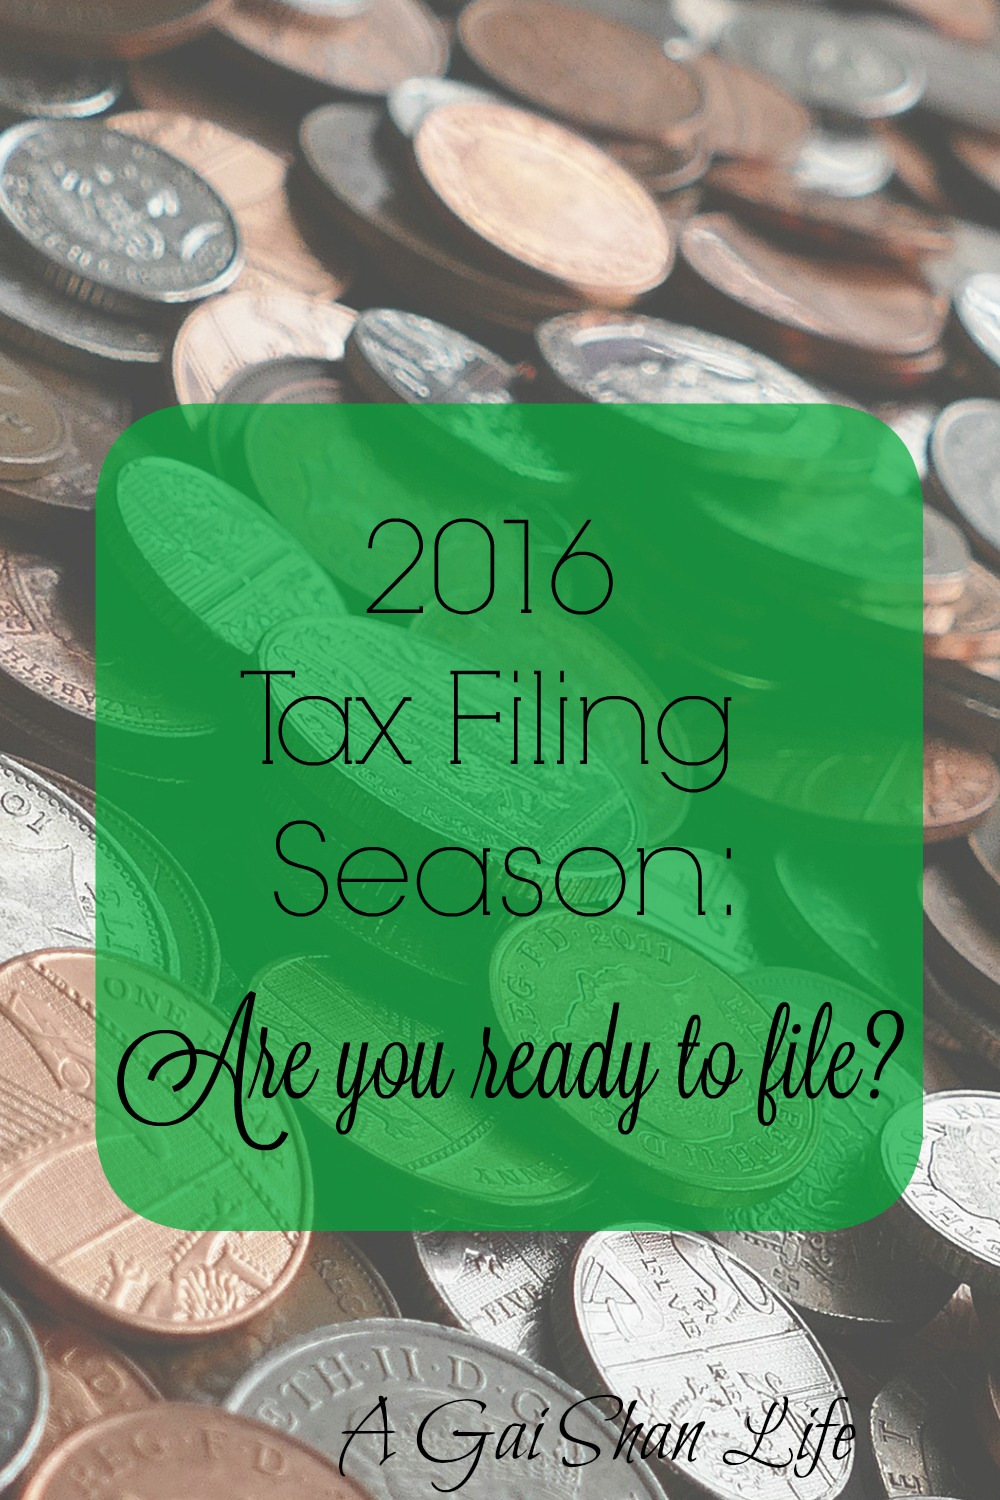 2016 Tax Filing Season: are you ready? I'm not, this year is going to smart!